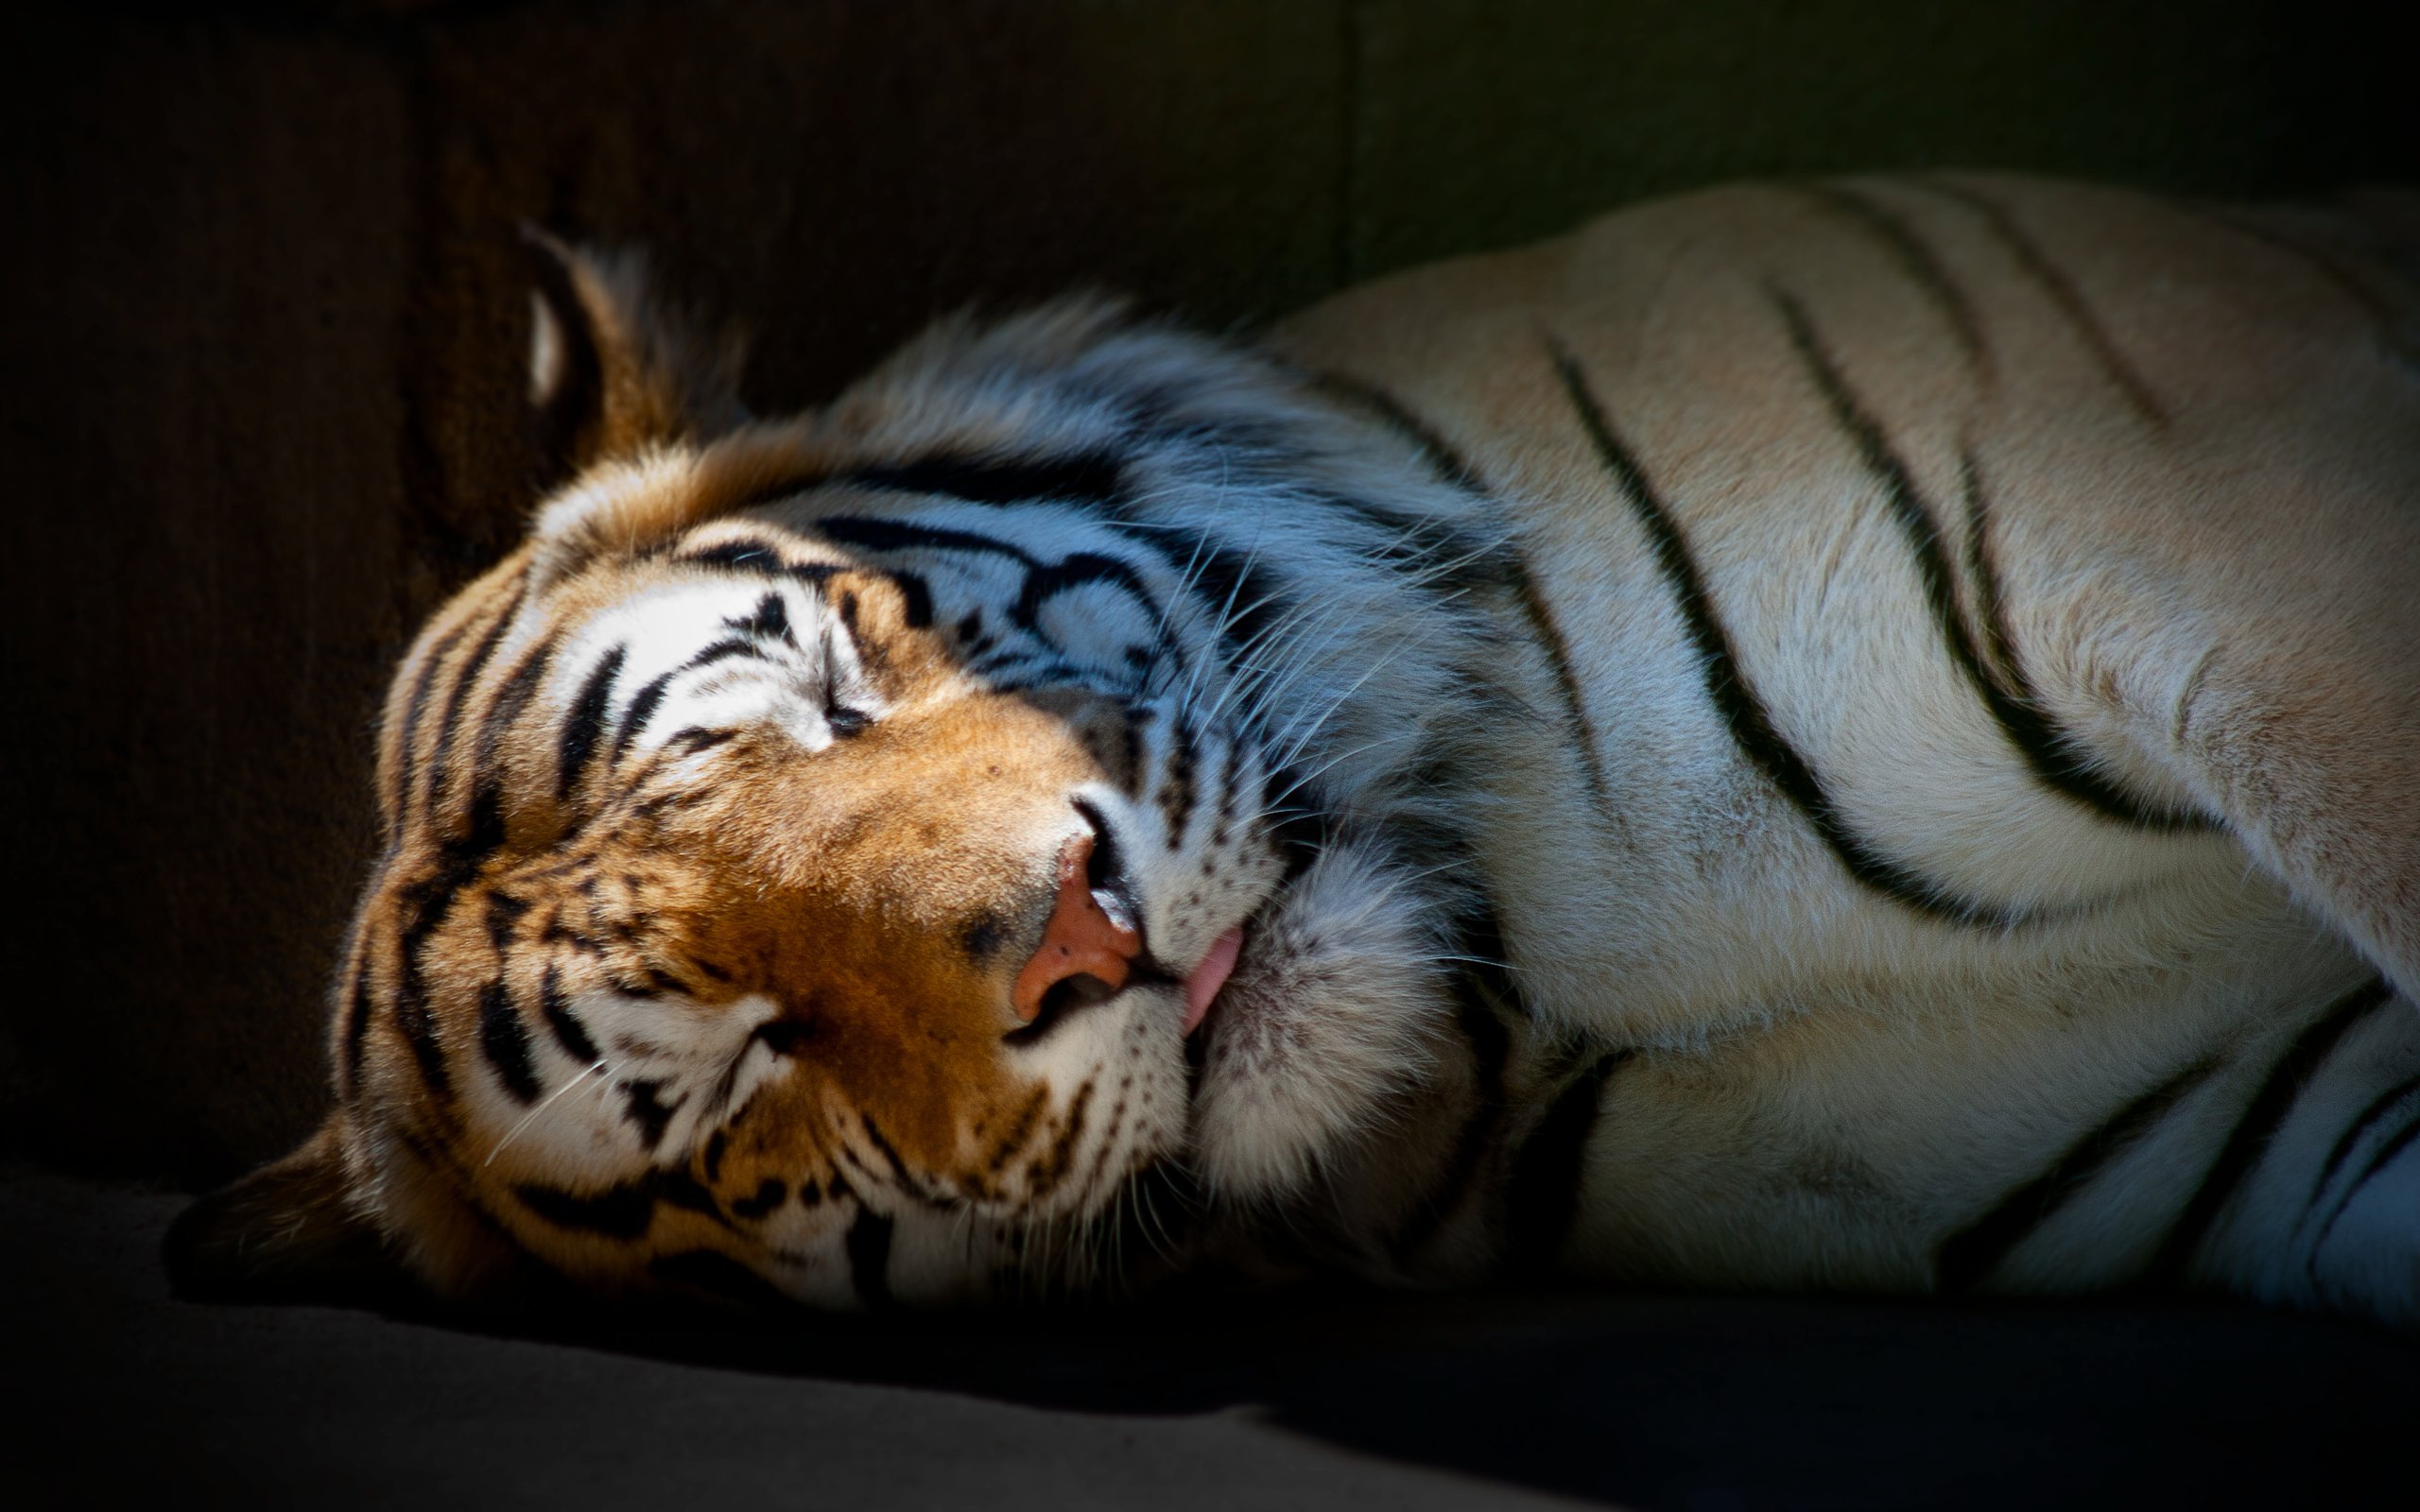 20206 download wallpaper Animals, Tigers screensavers and pictures for free